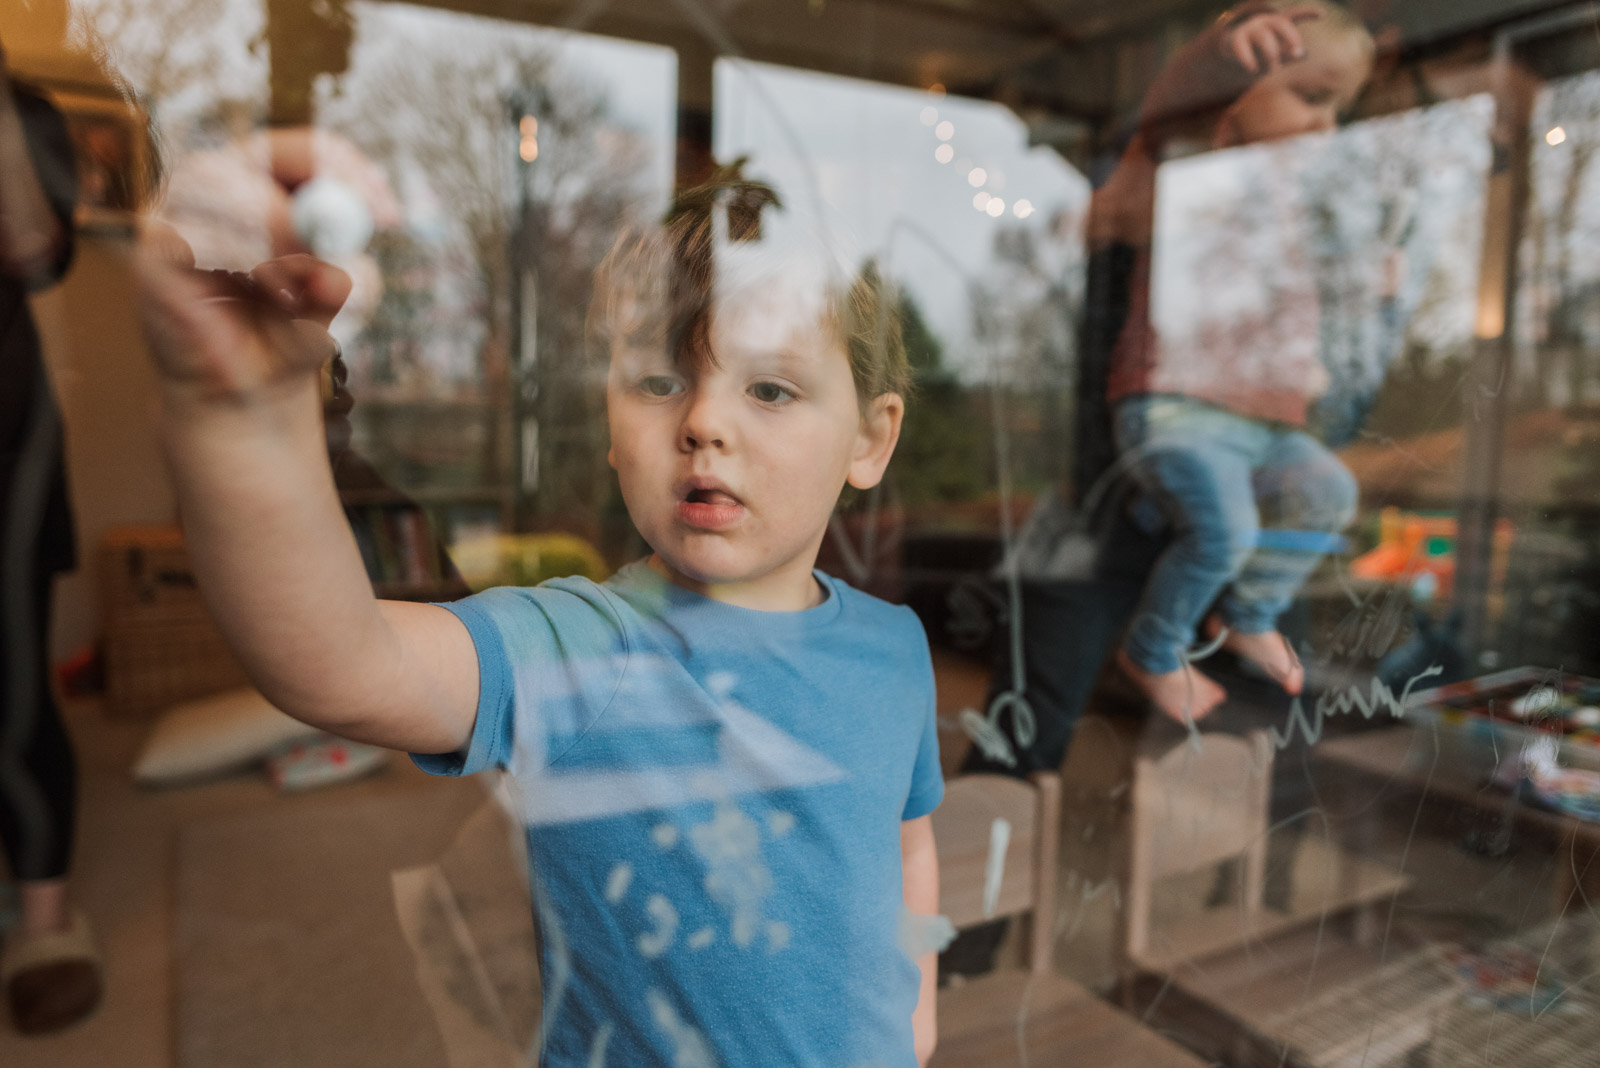 Unposed family photography, boy writing on glass, The Ginger Collective